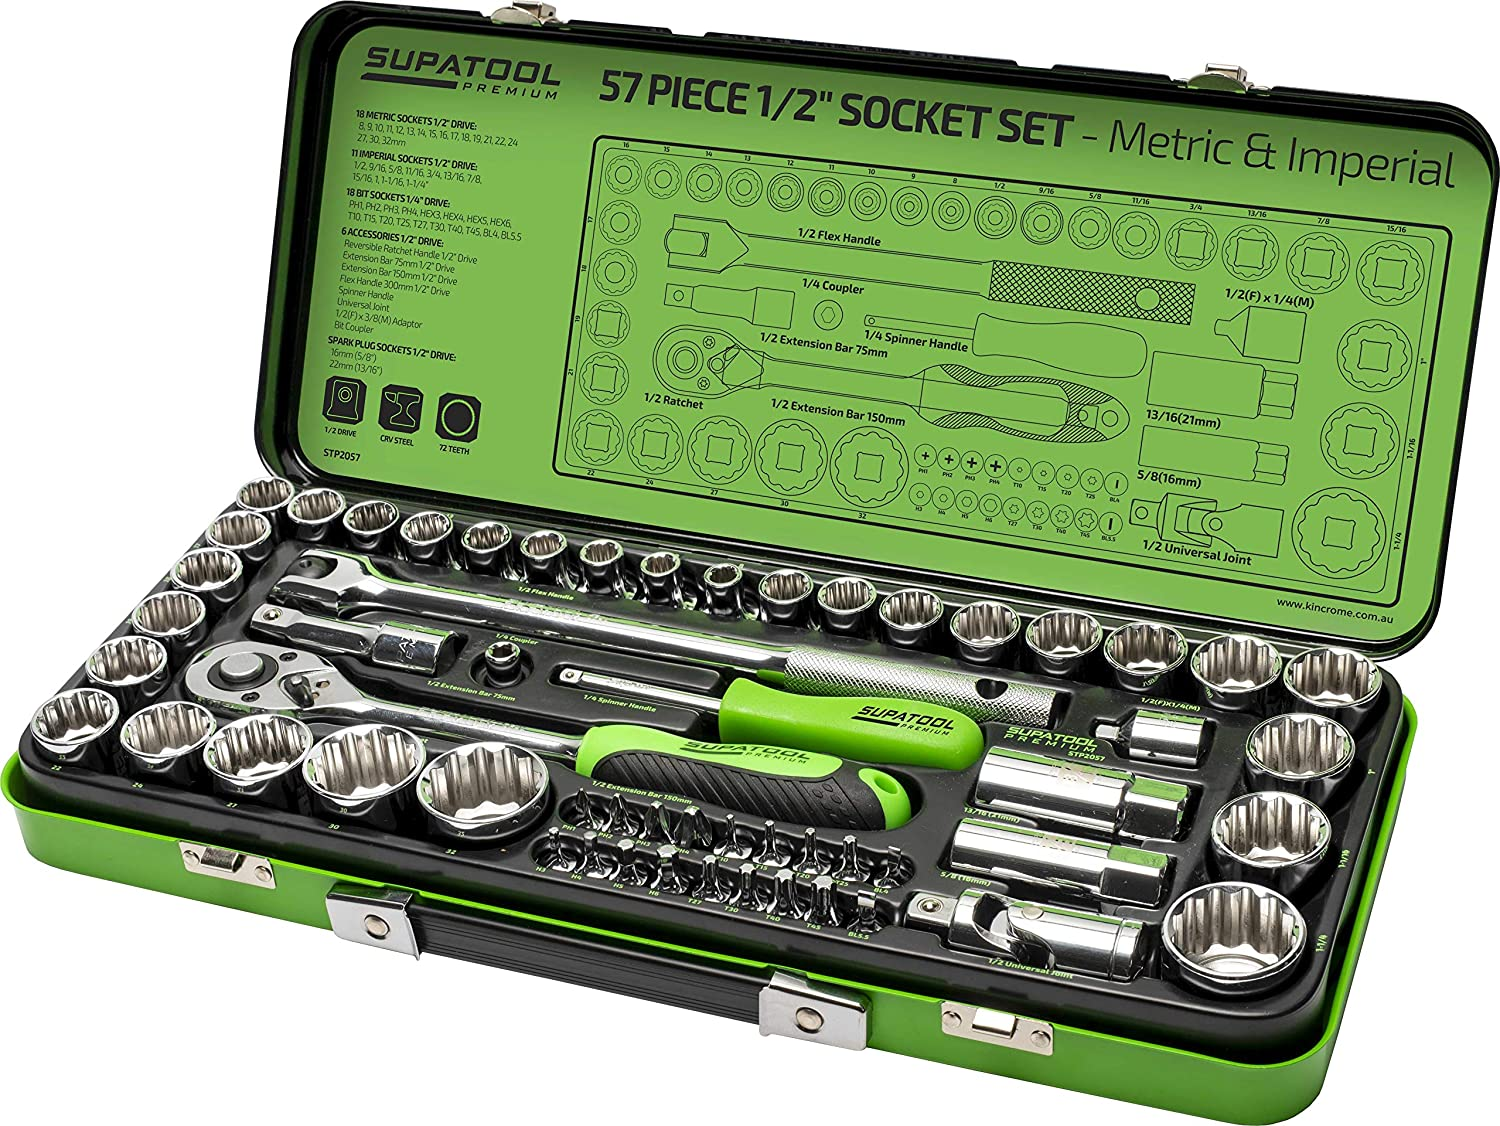 40 Piece 1//4 /& 3//8 Drive SAE /& Metric Tool Kit with Reversible Ratchet /& Case Supatool Socket Wrench Set